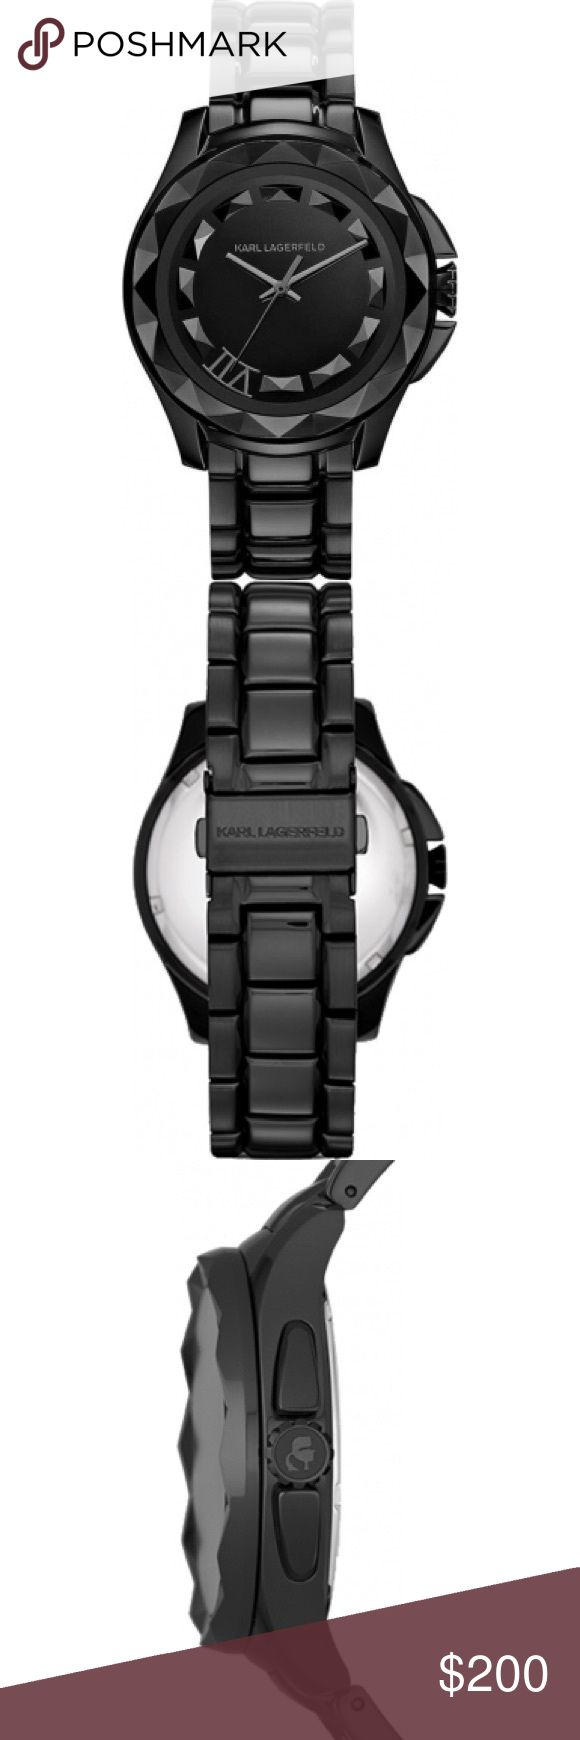 Karl Lagerfeld Karl 7 Black Steel Bracelet Watch Karl Lagerfeld Women's Watch KL1001.  Introducing yet another splendid analog women's  wristwatch that is manufactured and designed by Karl Lagerfeld. This watch features a black metal bracelet and a stainless steel case combined with a black face. Used once and comes with original box. Originally $350. Purchased from Nordstrom. No trades. Karl Lagerfeld Accessories Watches